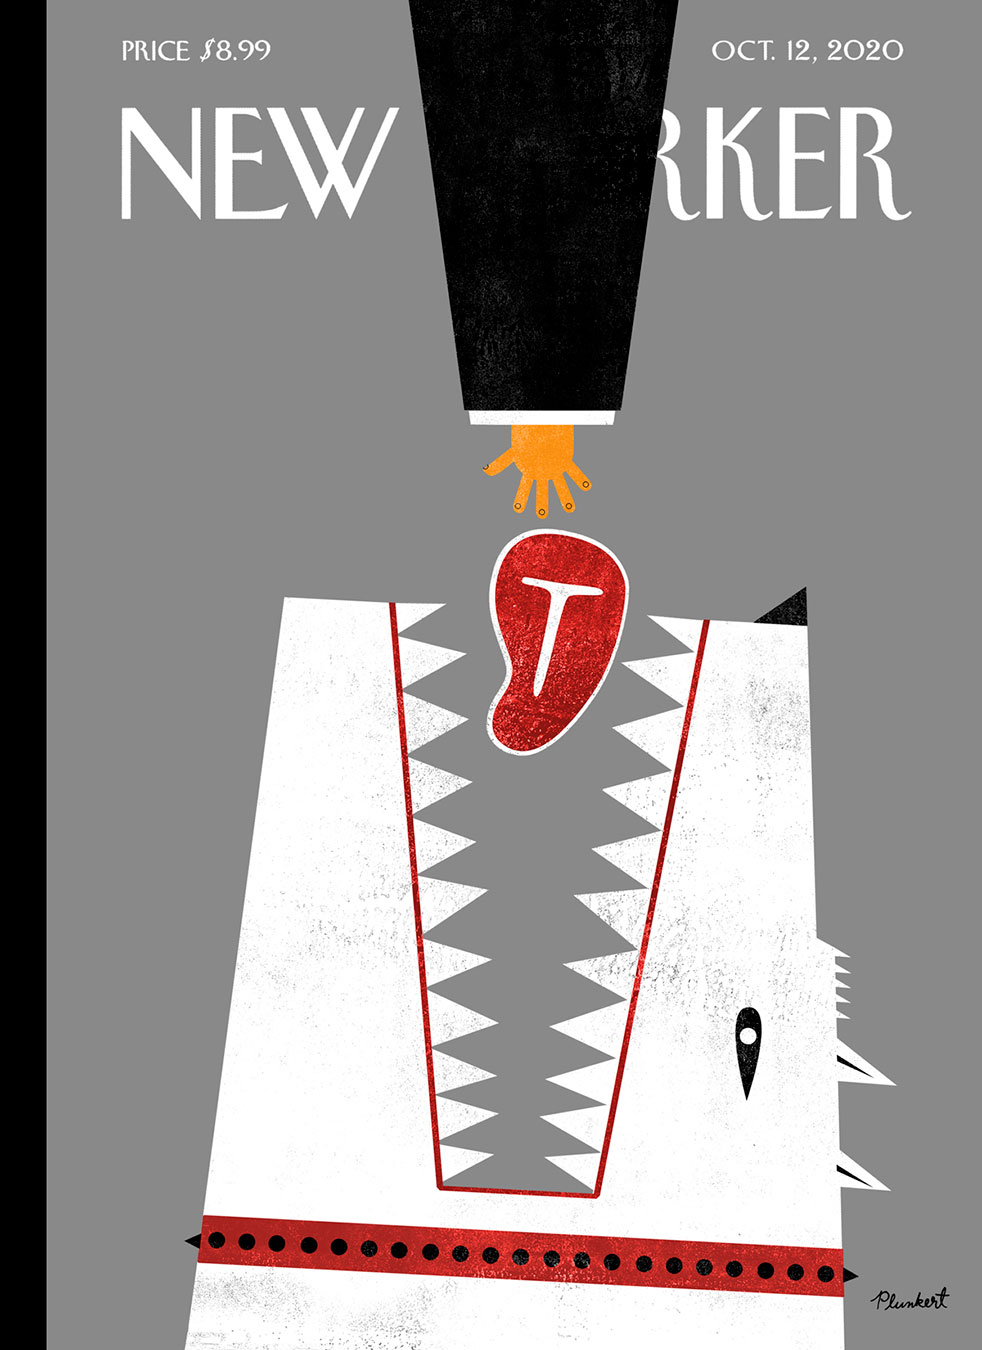 David Plunkert / Red Meat / The New Yorker